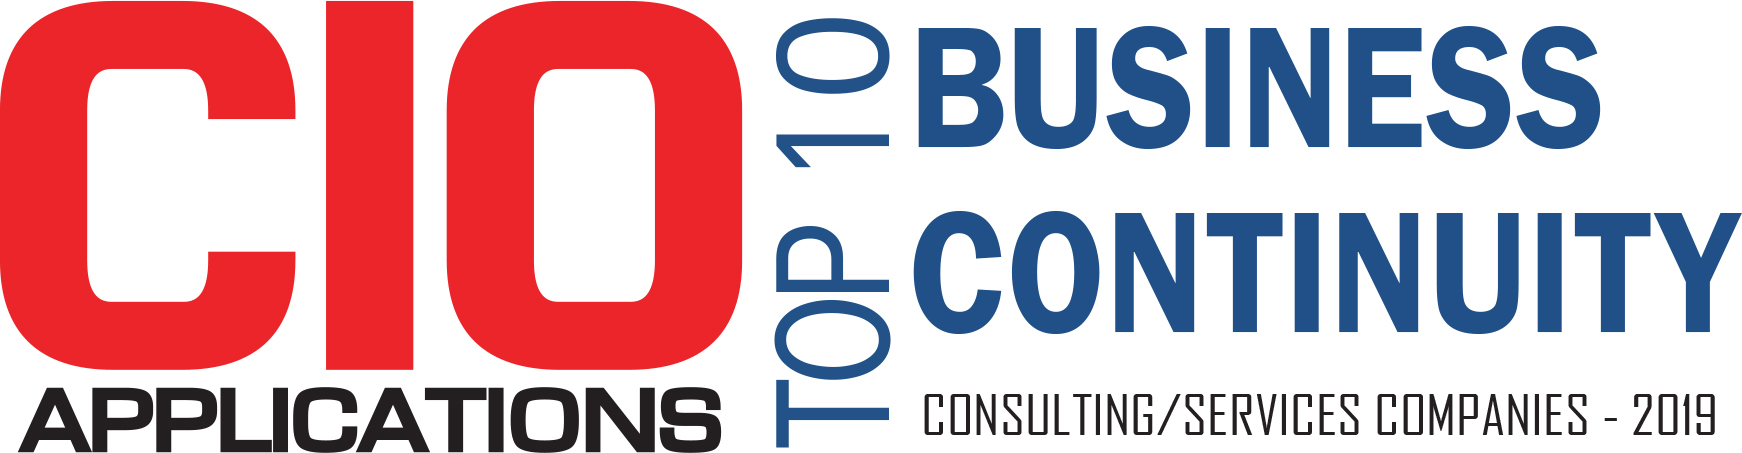 Top 10 Business Continuity Consulting/Services Companies - 2019